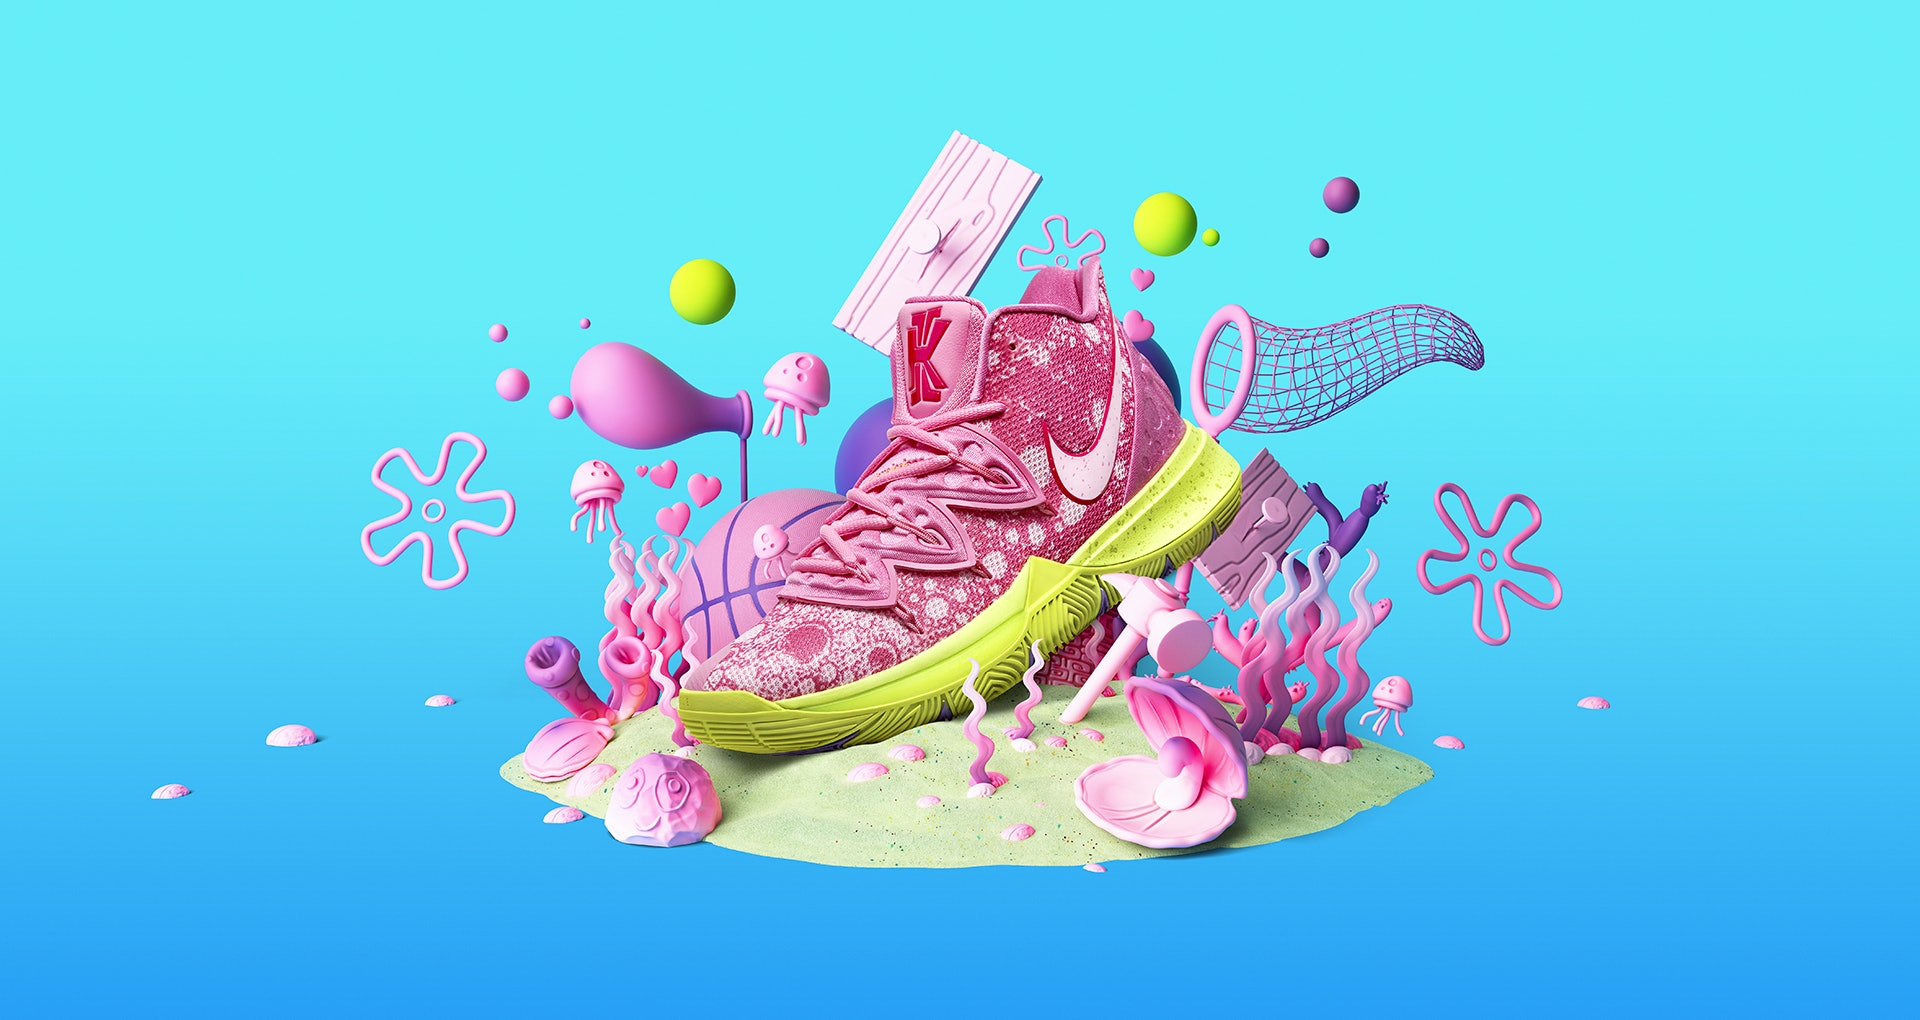 How Much Do The Nike x 'SpongeBob SquarePants' Sneakers Cost